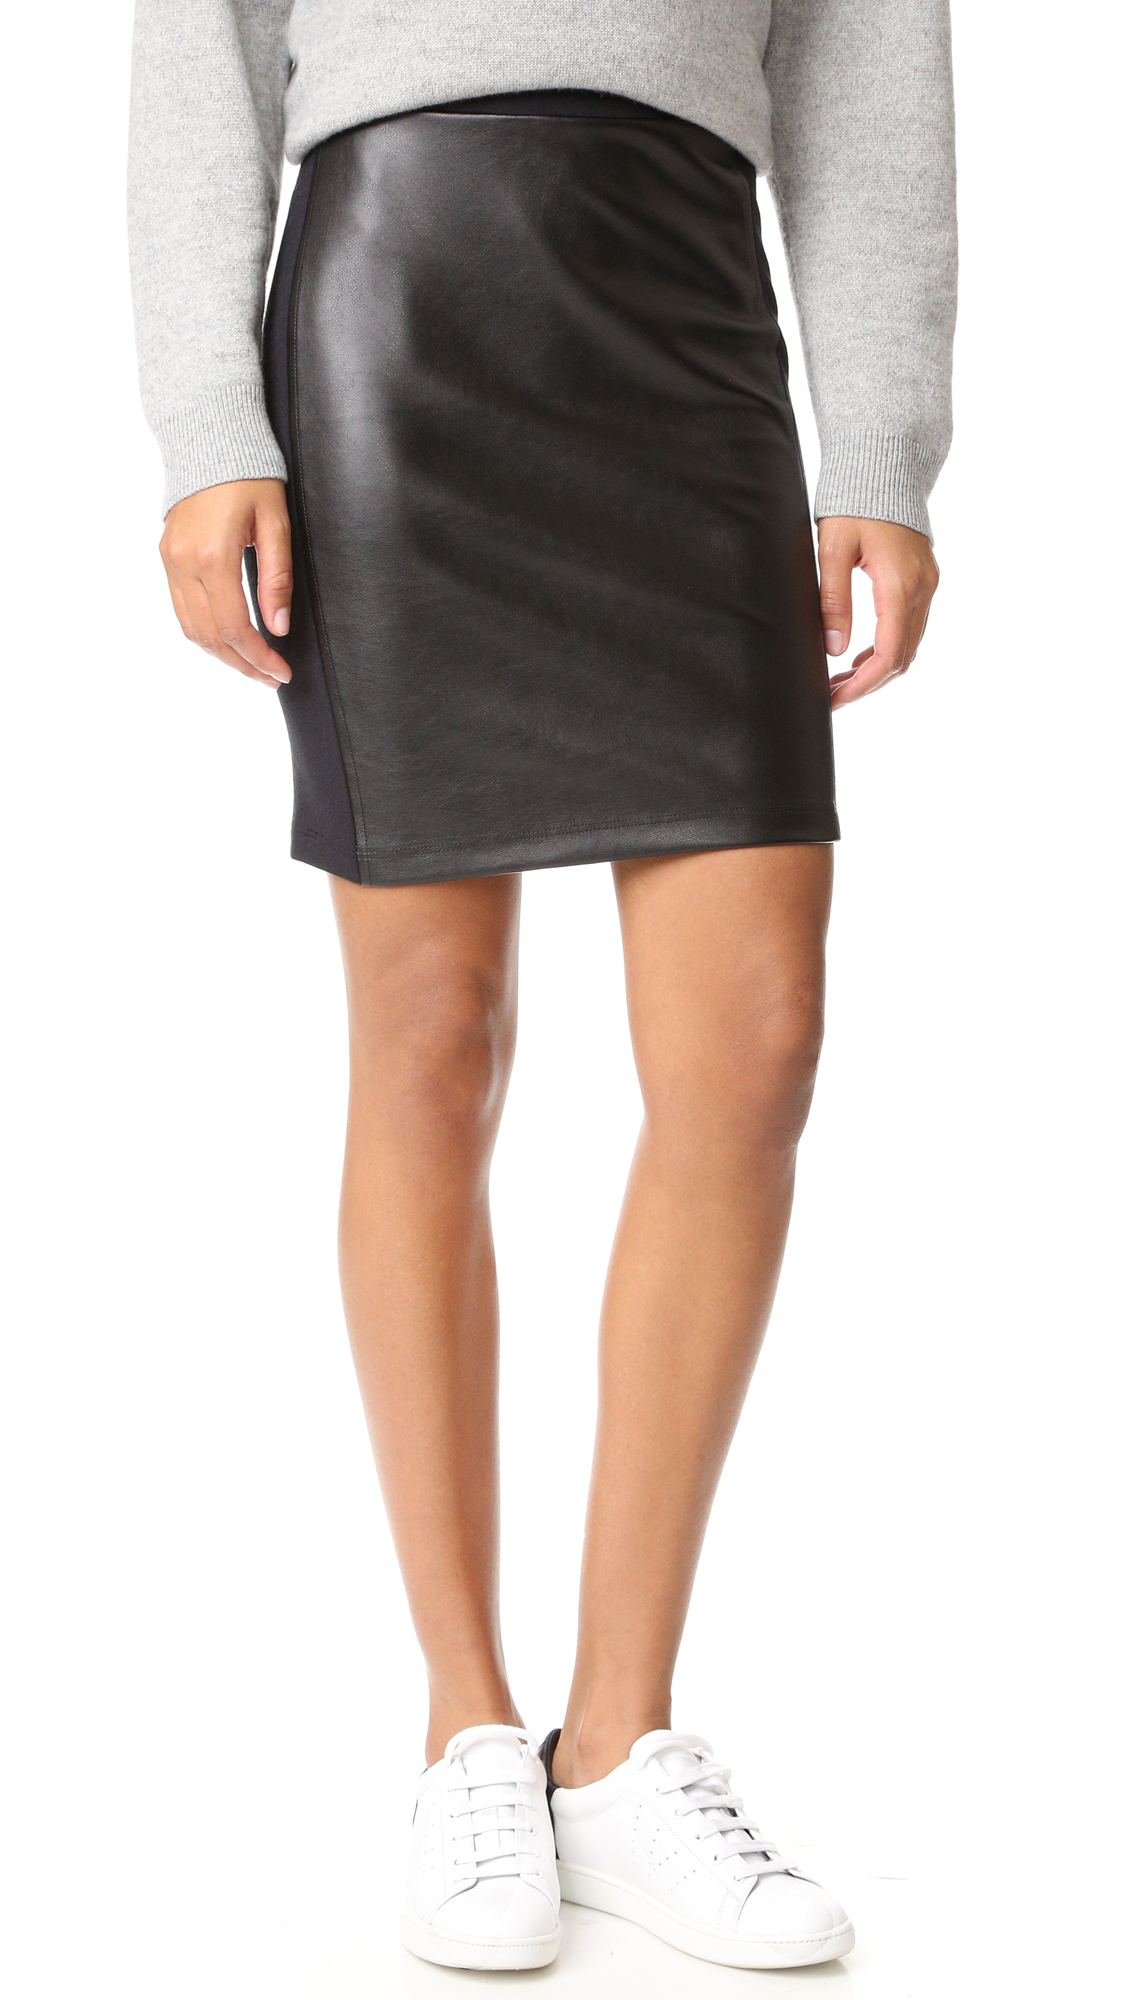 A faux leather front panel adds a sophisticated edge to this french terry Splendid skirt. Covered elastic waistband. Vented hem. Unlined. Fabric: Faux leather / french terry. Shell: 48% cotton/48% modal/4% spandex. Trim: 100% polyurethane. Dry clean. Made in